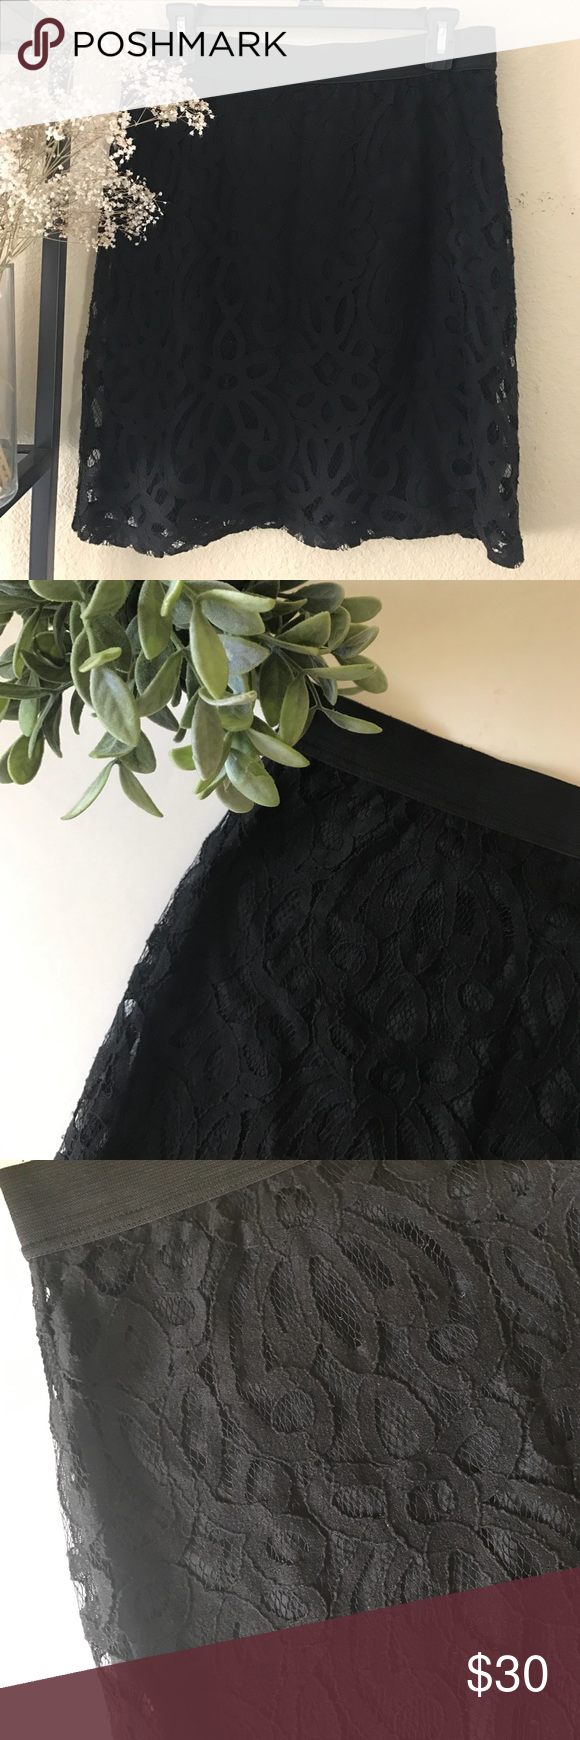 New York& Co Lace Skirt NY&Co black lace skirt. Elastic waist. Pencil skirt. Lightly worn. Size S. New York & Company Skirts Pencil